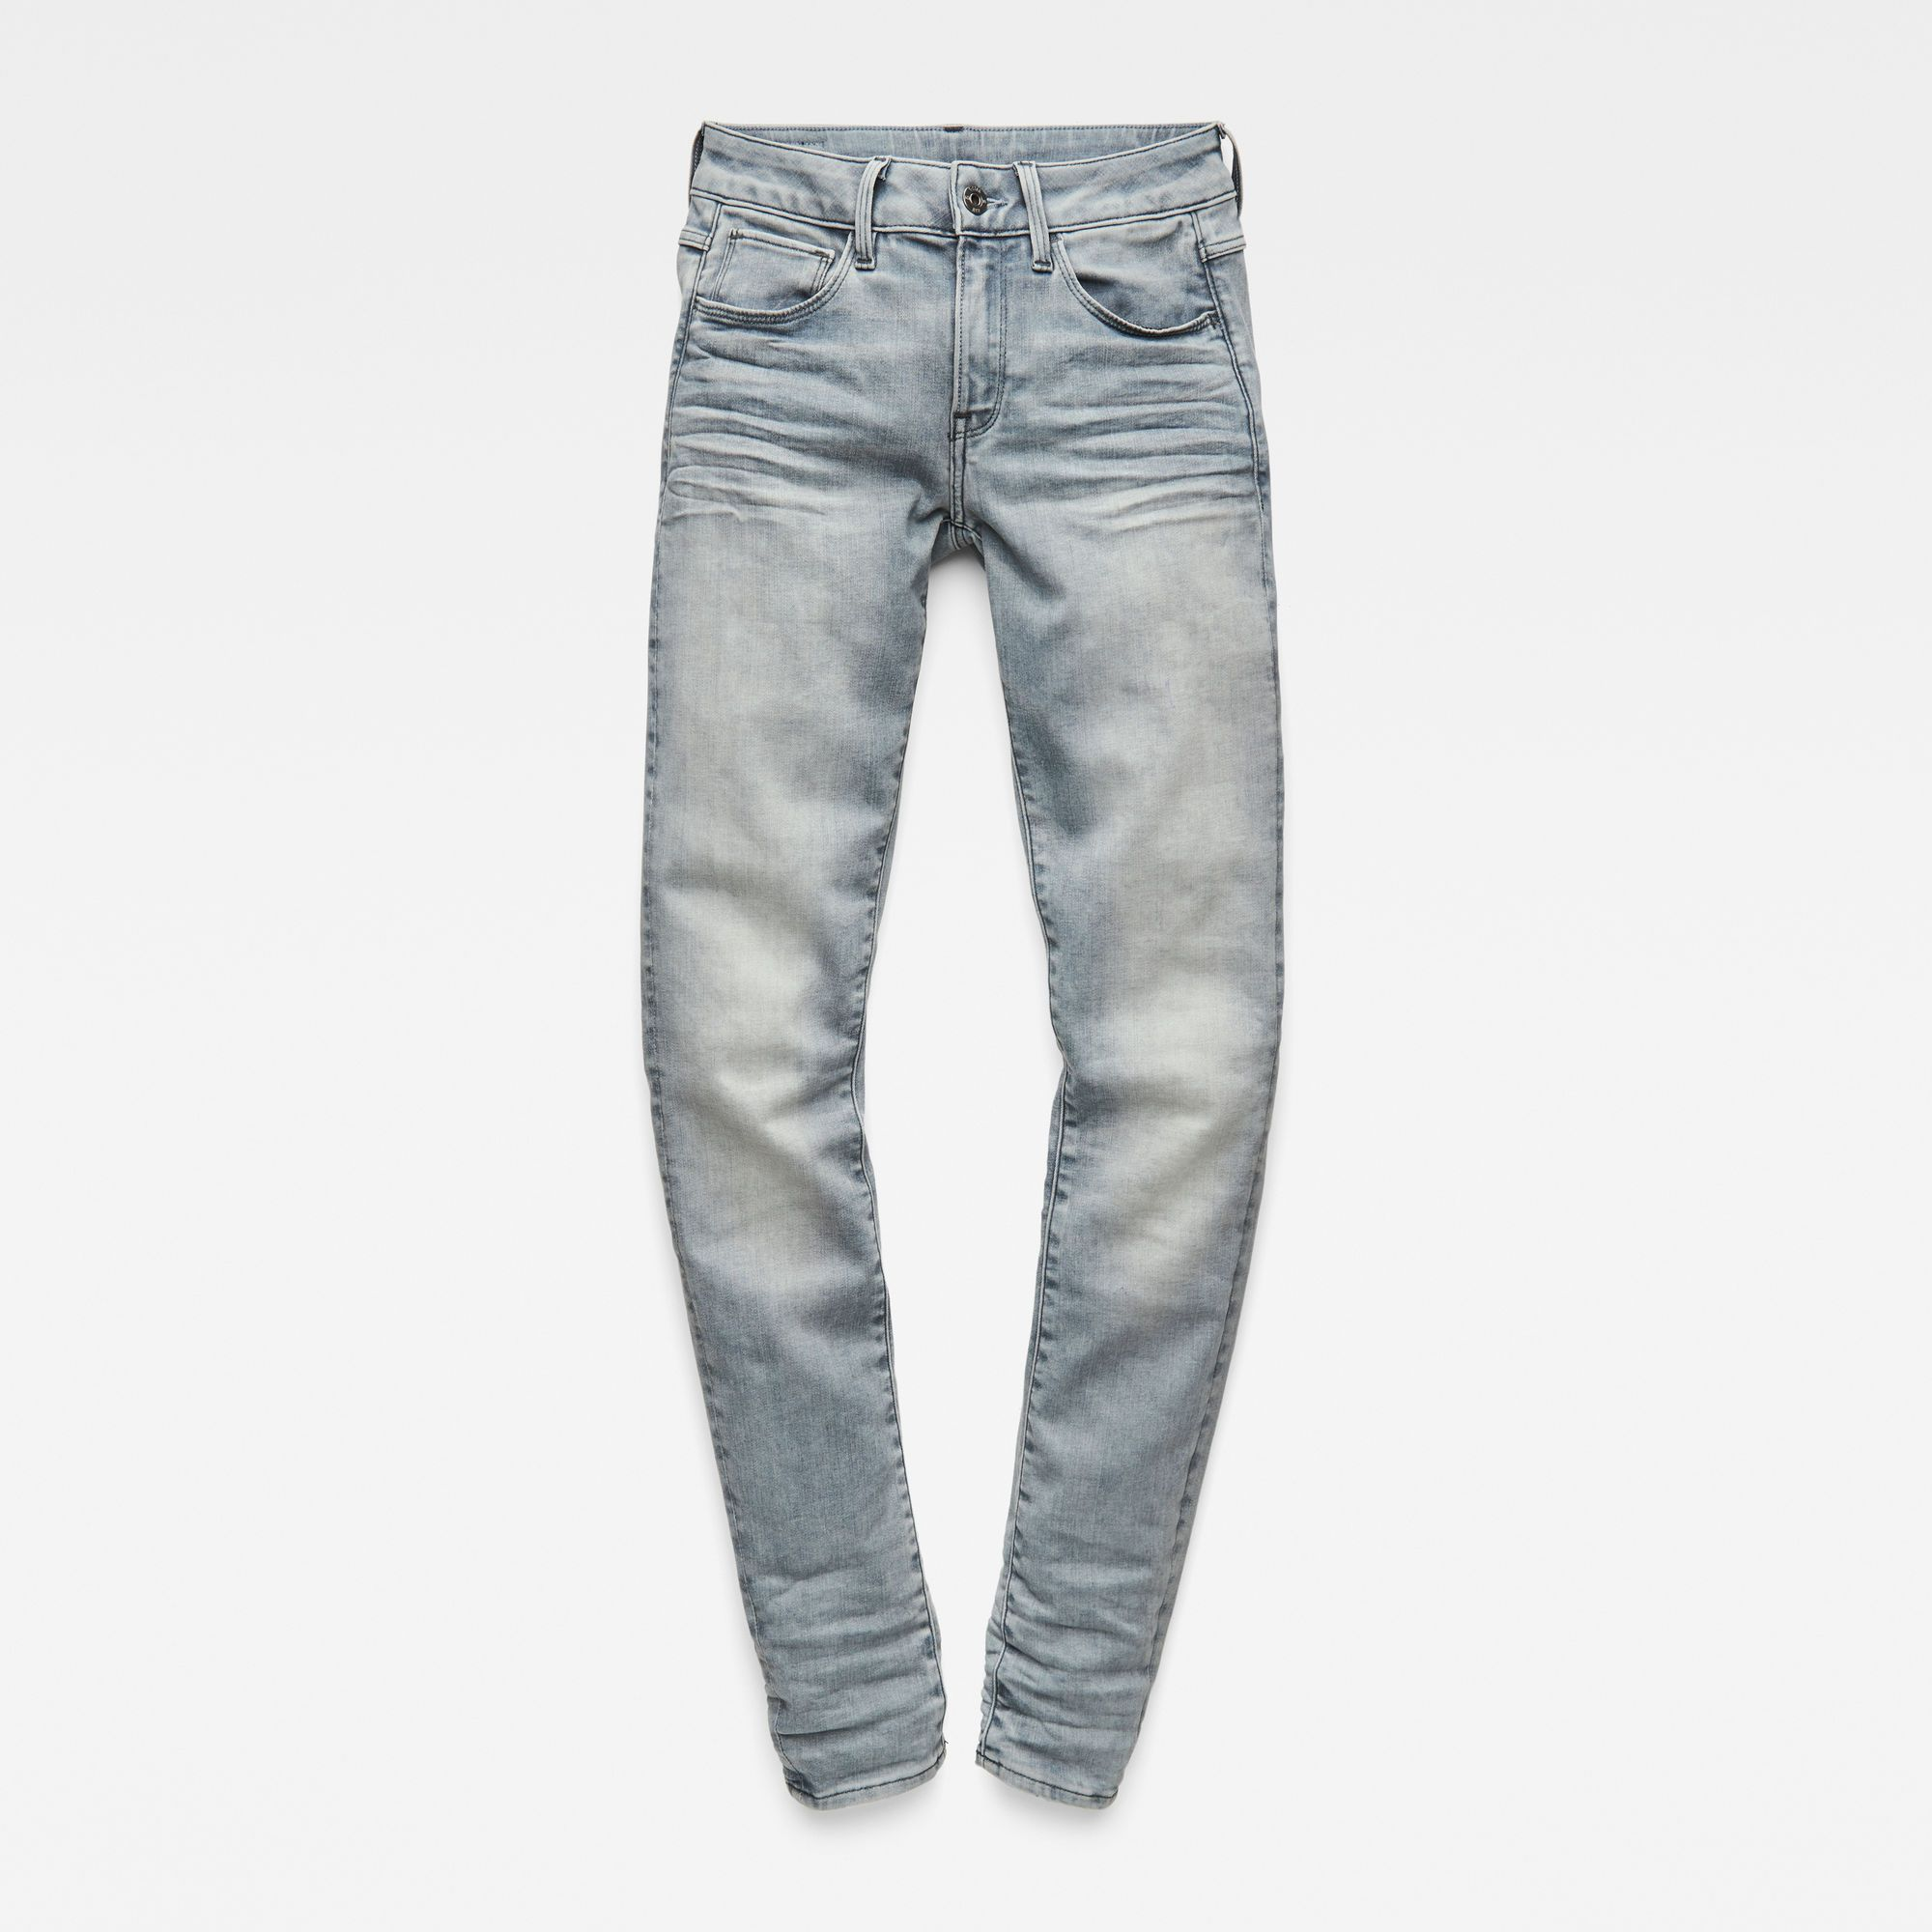 G-Star RAW 3301 Deconstructed Mid Waist Skinny Jeans